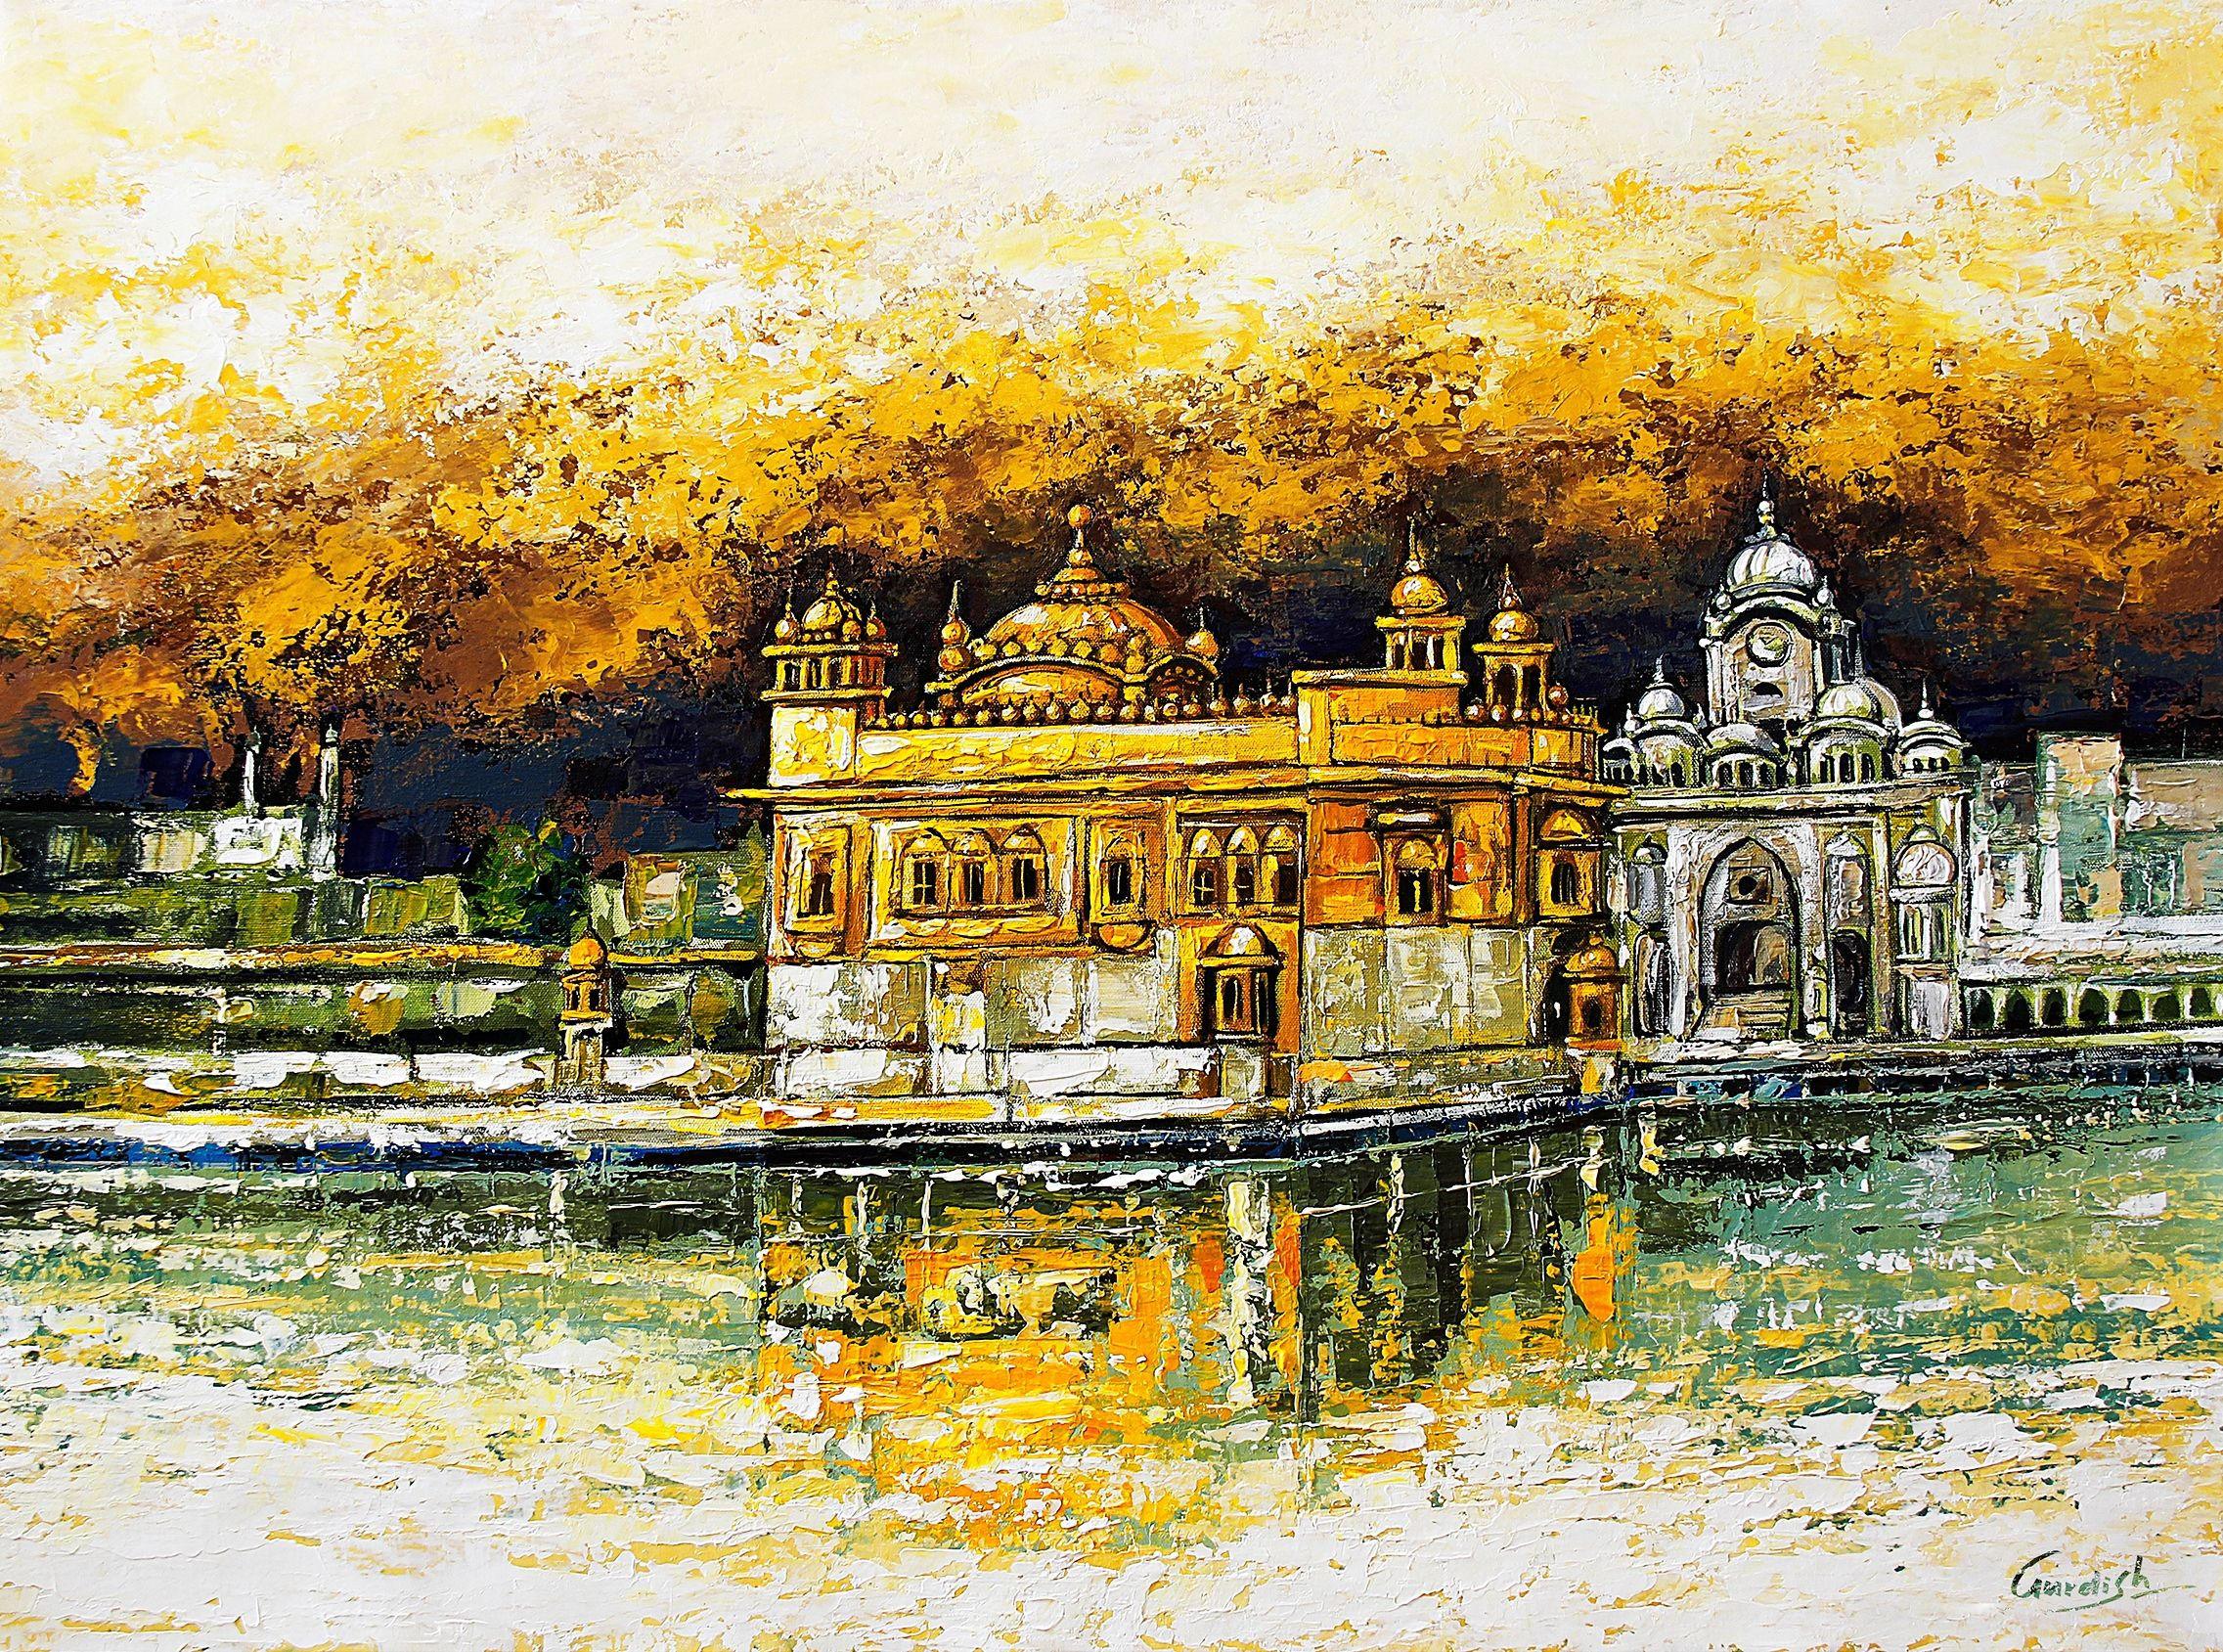 It S A Beautiful Landscapepainting Of Goldentemple Which Is Painted In The Shade Of Gold Acrylic Color The Artis Golden Temple Painting Landscape Paintings